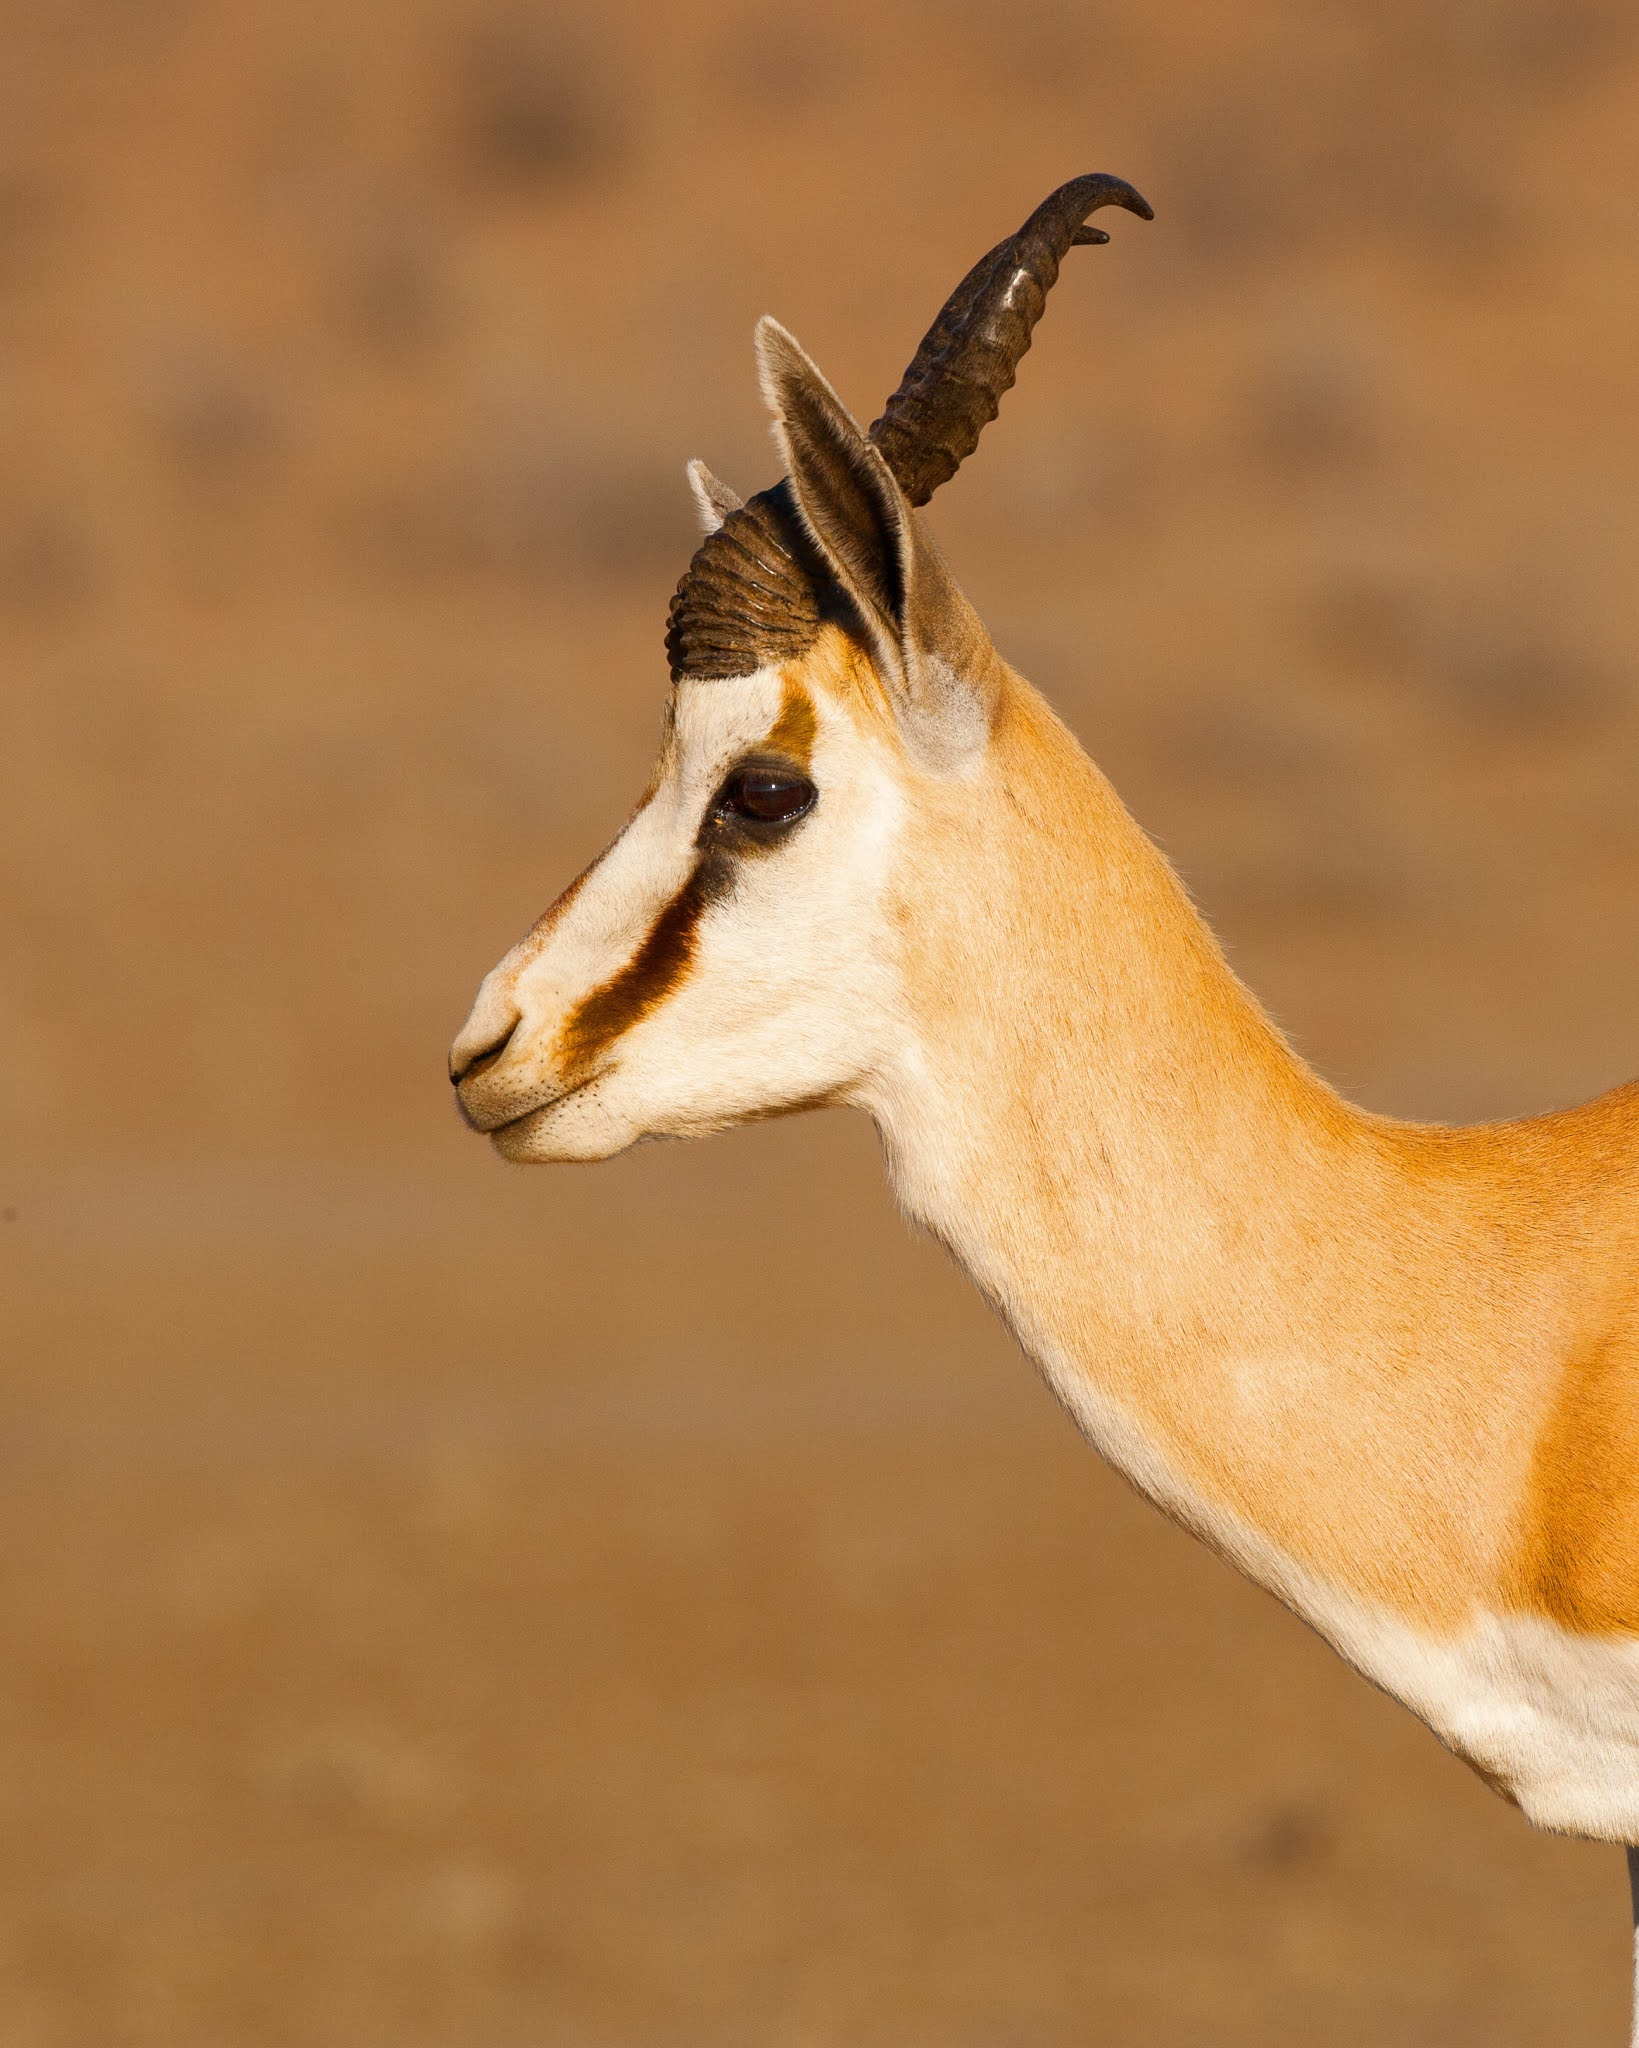 100+ Springbok's HD Pictures - World Fastest 3rd Land Animals